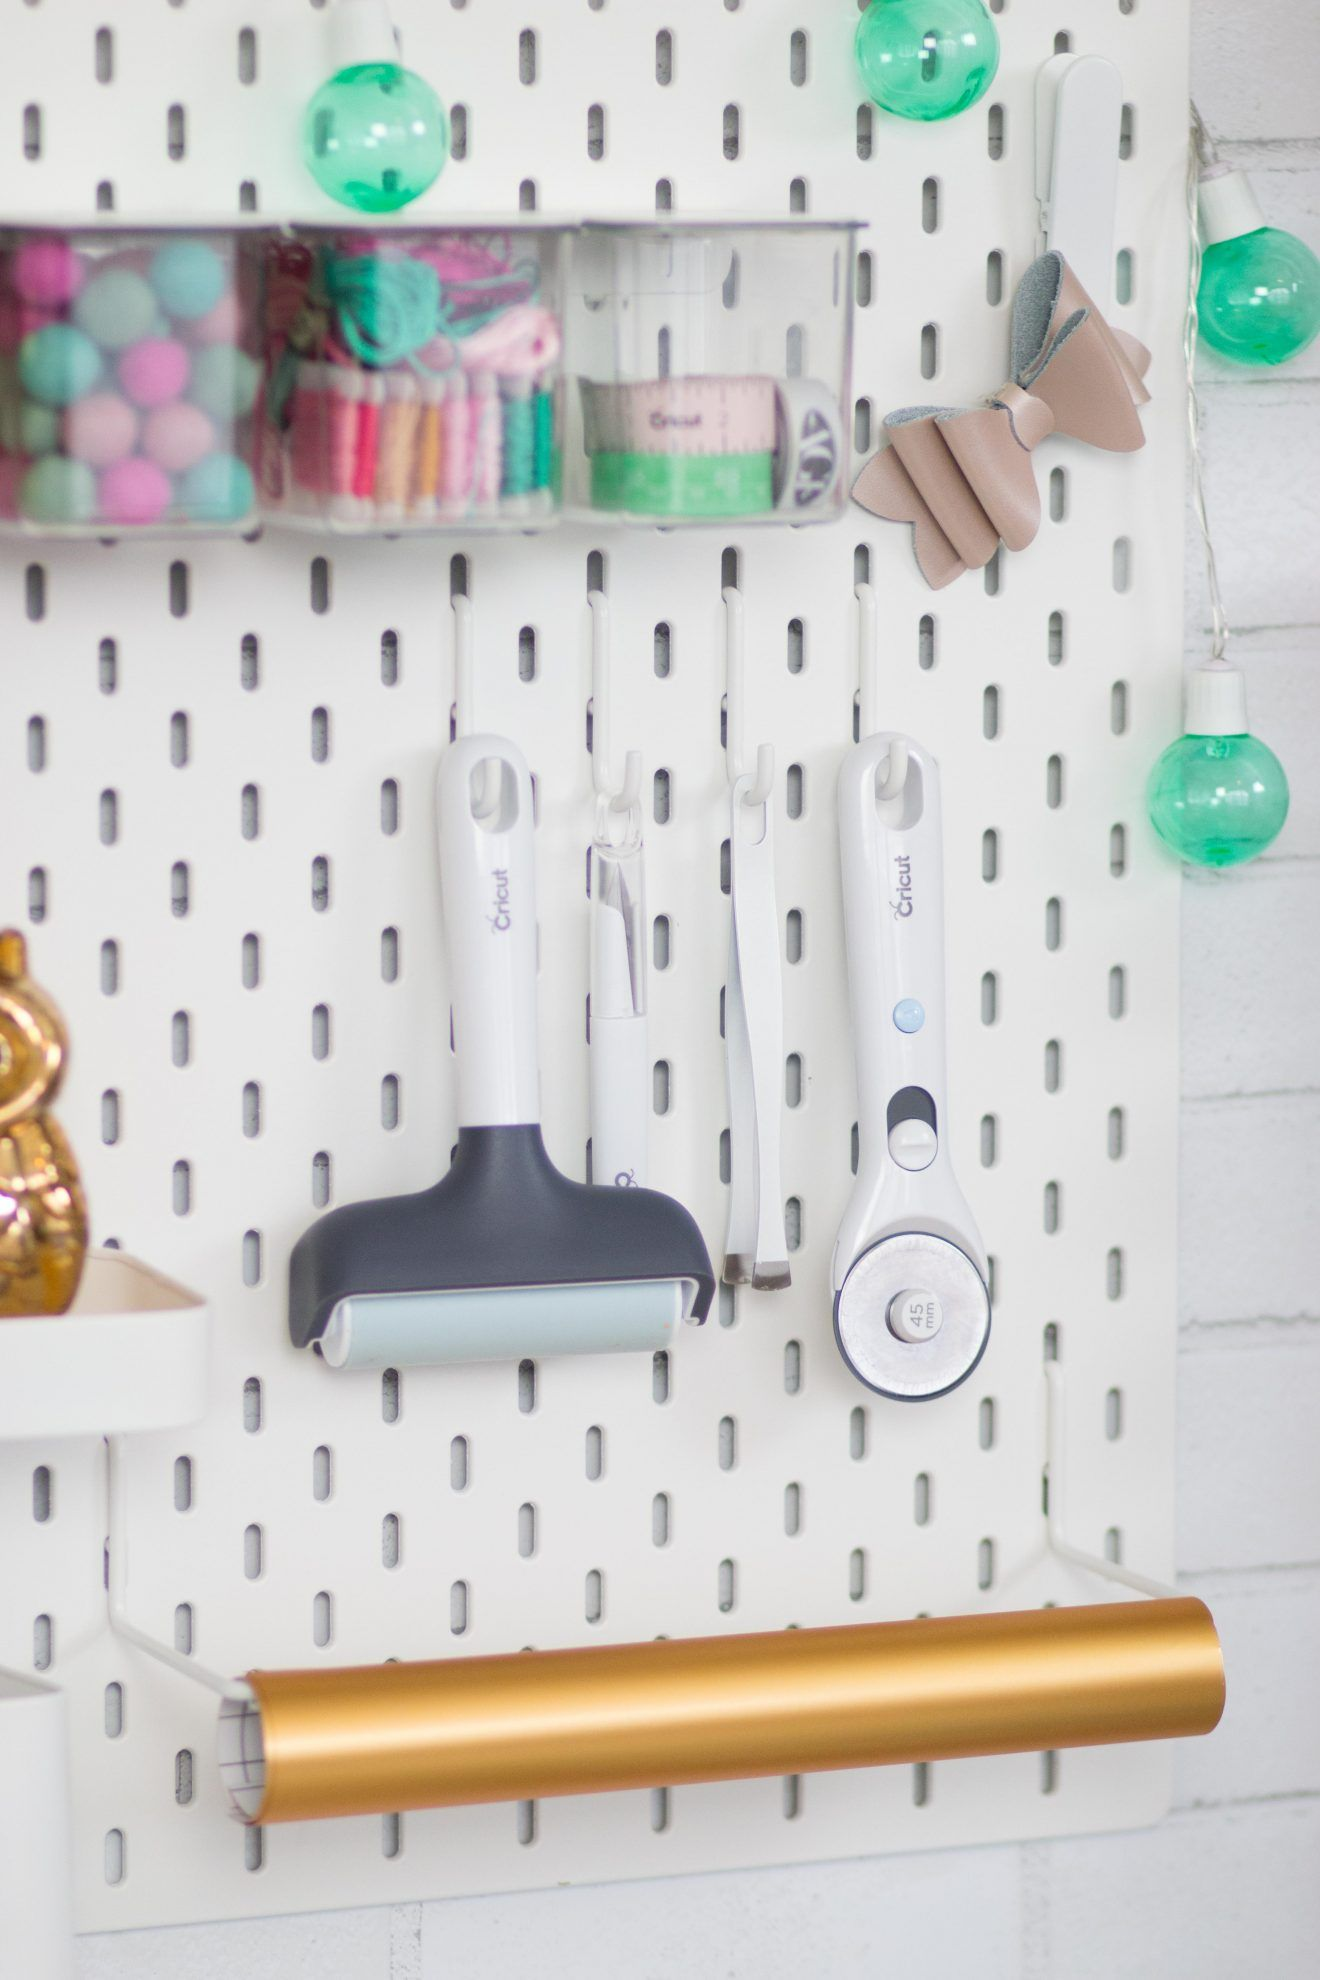 Cricut Craft and Sewing Room Organization Hacks - Sweet Red